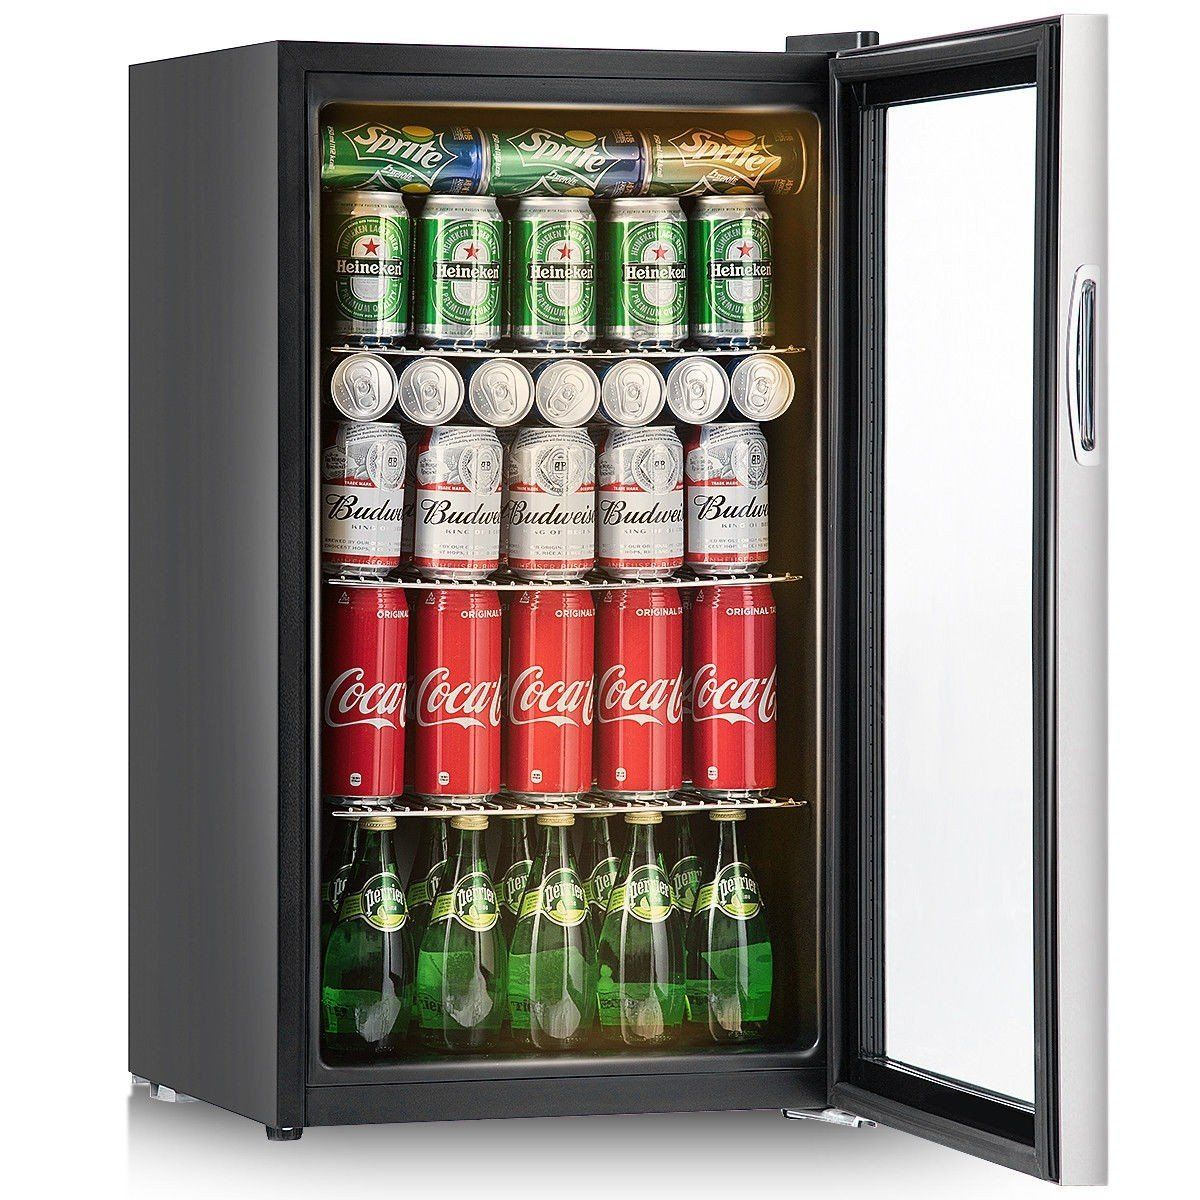 120 Can Beverage Refrigerator Cooler Find Out More About The Great Product At The Image Link This Is A Beverage Refrigerator Cool Mini Fridge Mini Fridge